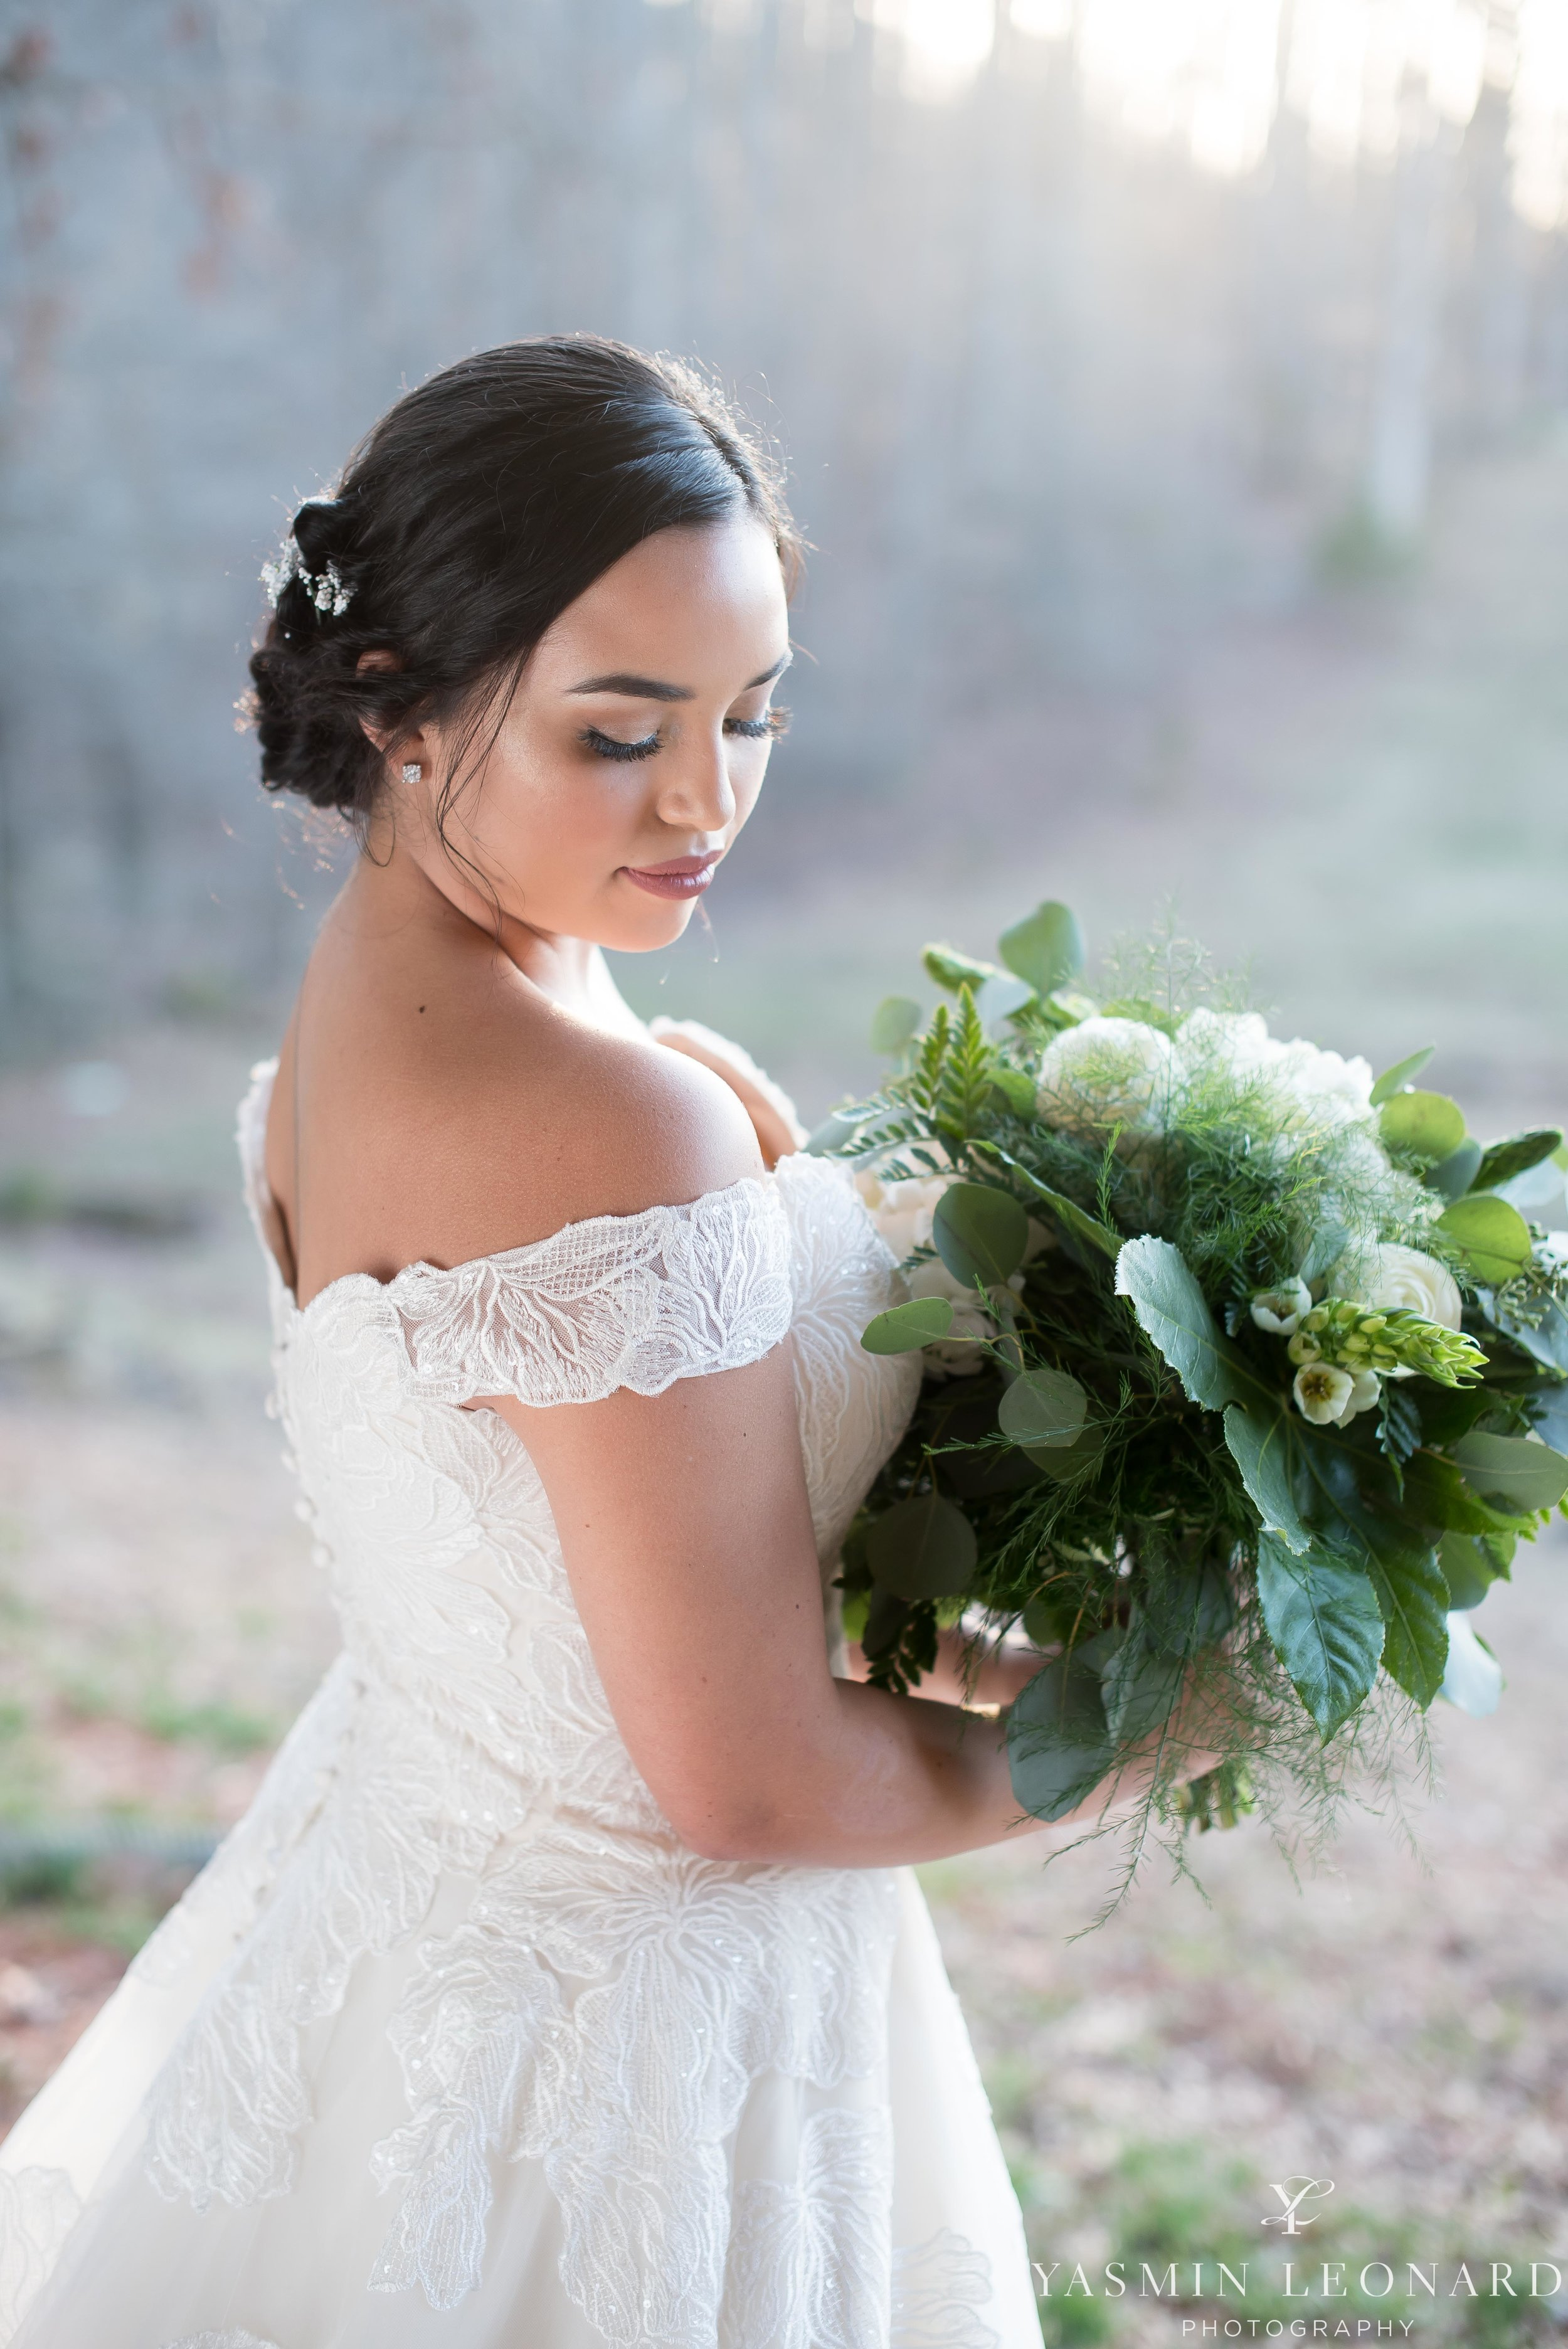 Old Homeplace Vineyard - Grits and Glitter - Dashing Dames Bridal Boutique - Just Priceless - Yasmin Leonard Photography - High Point Weddings - NC Weddings - NC Wedding Venues - High Point Jewelers - NC Wines - NC Vineyards - Cupcake Cuties-88.jpg